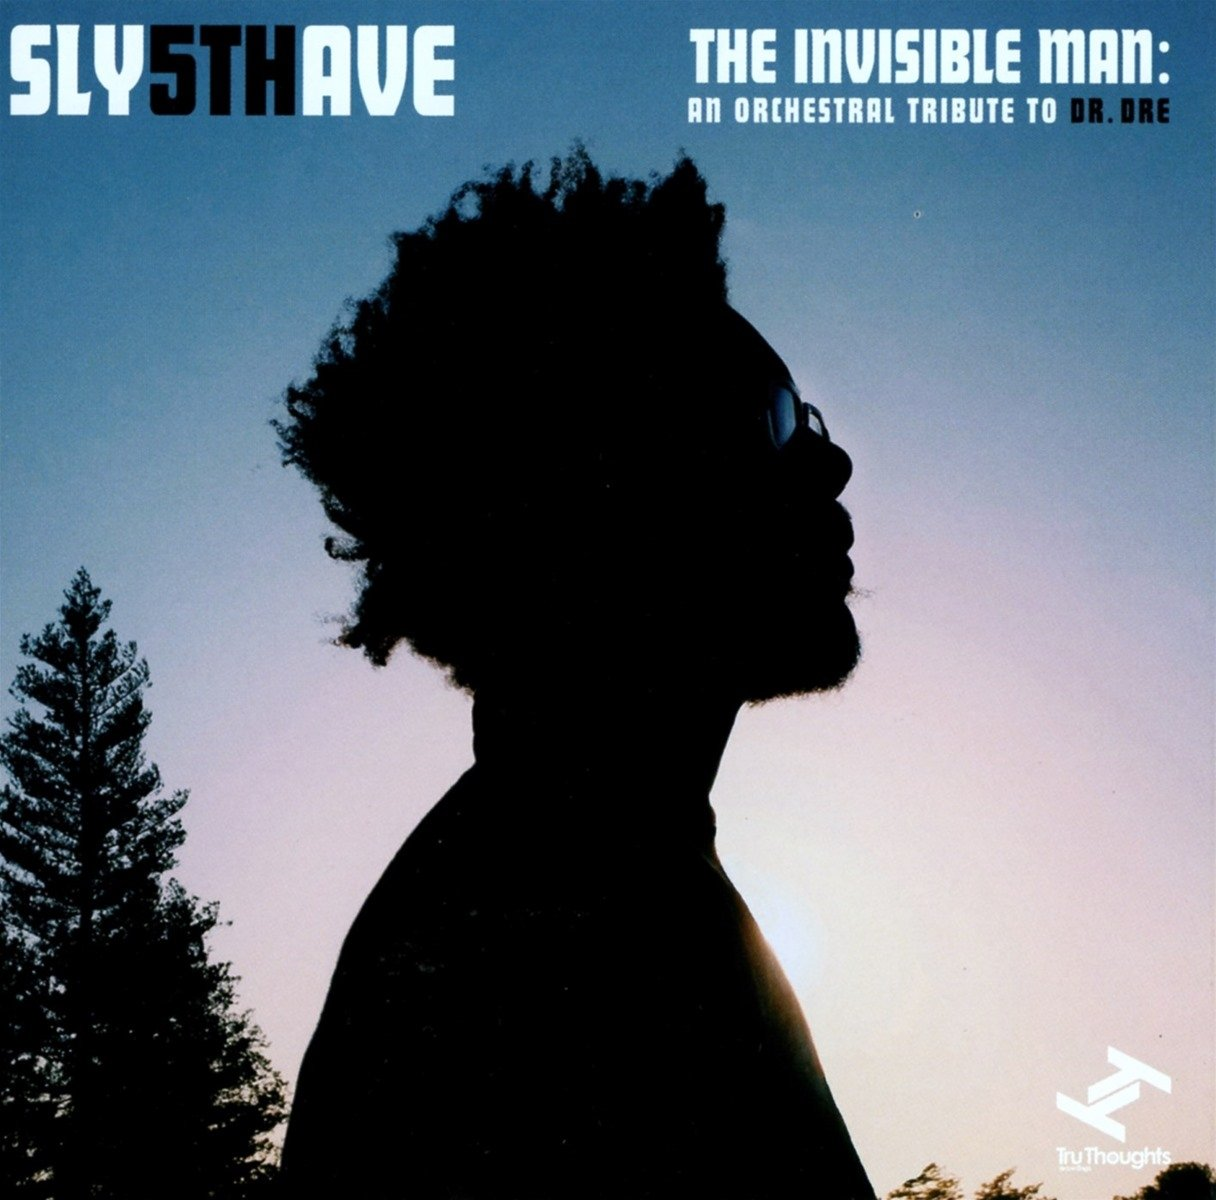 The Invisible Man: An Orchestral Tribute To Dr. Dre by Tru Thoughts